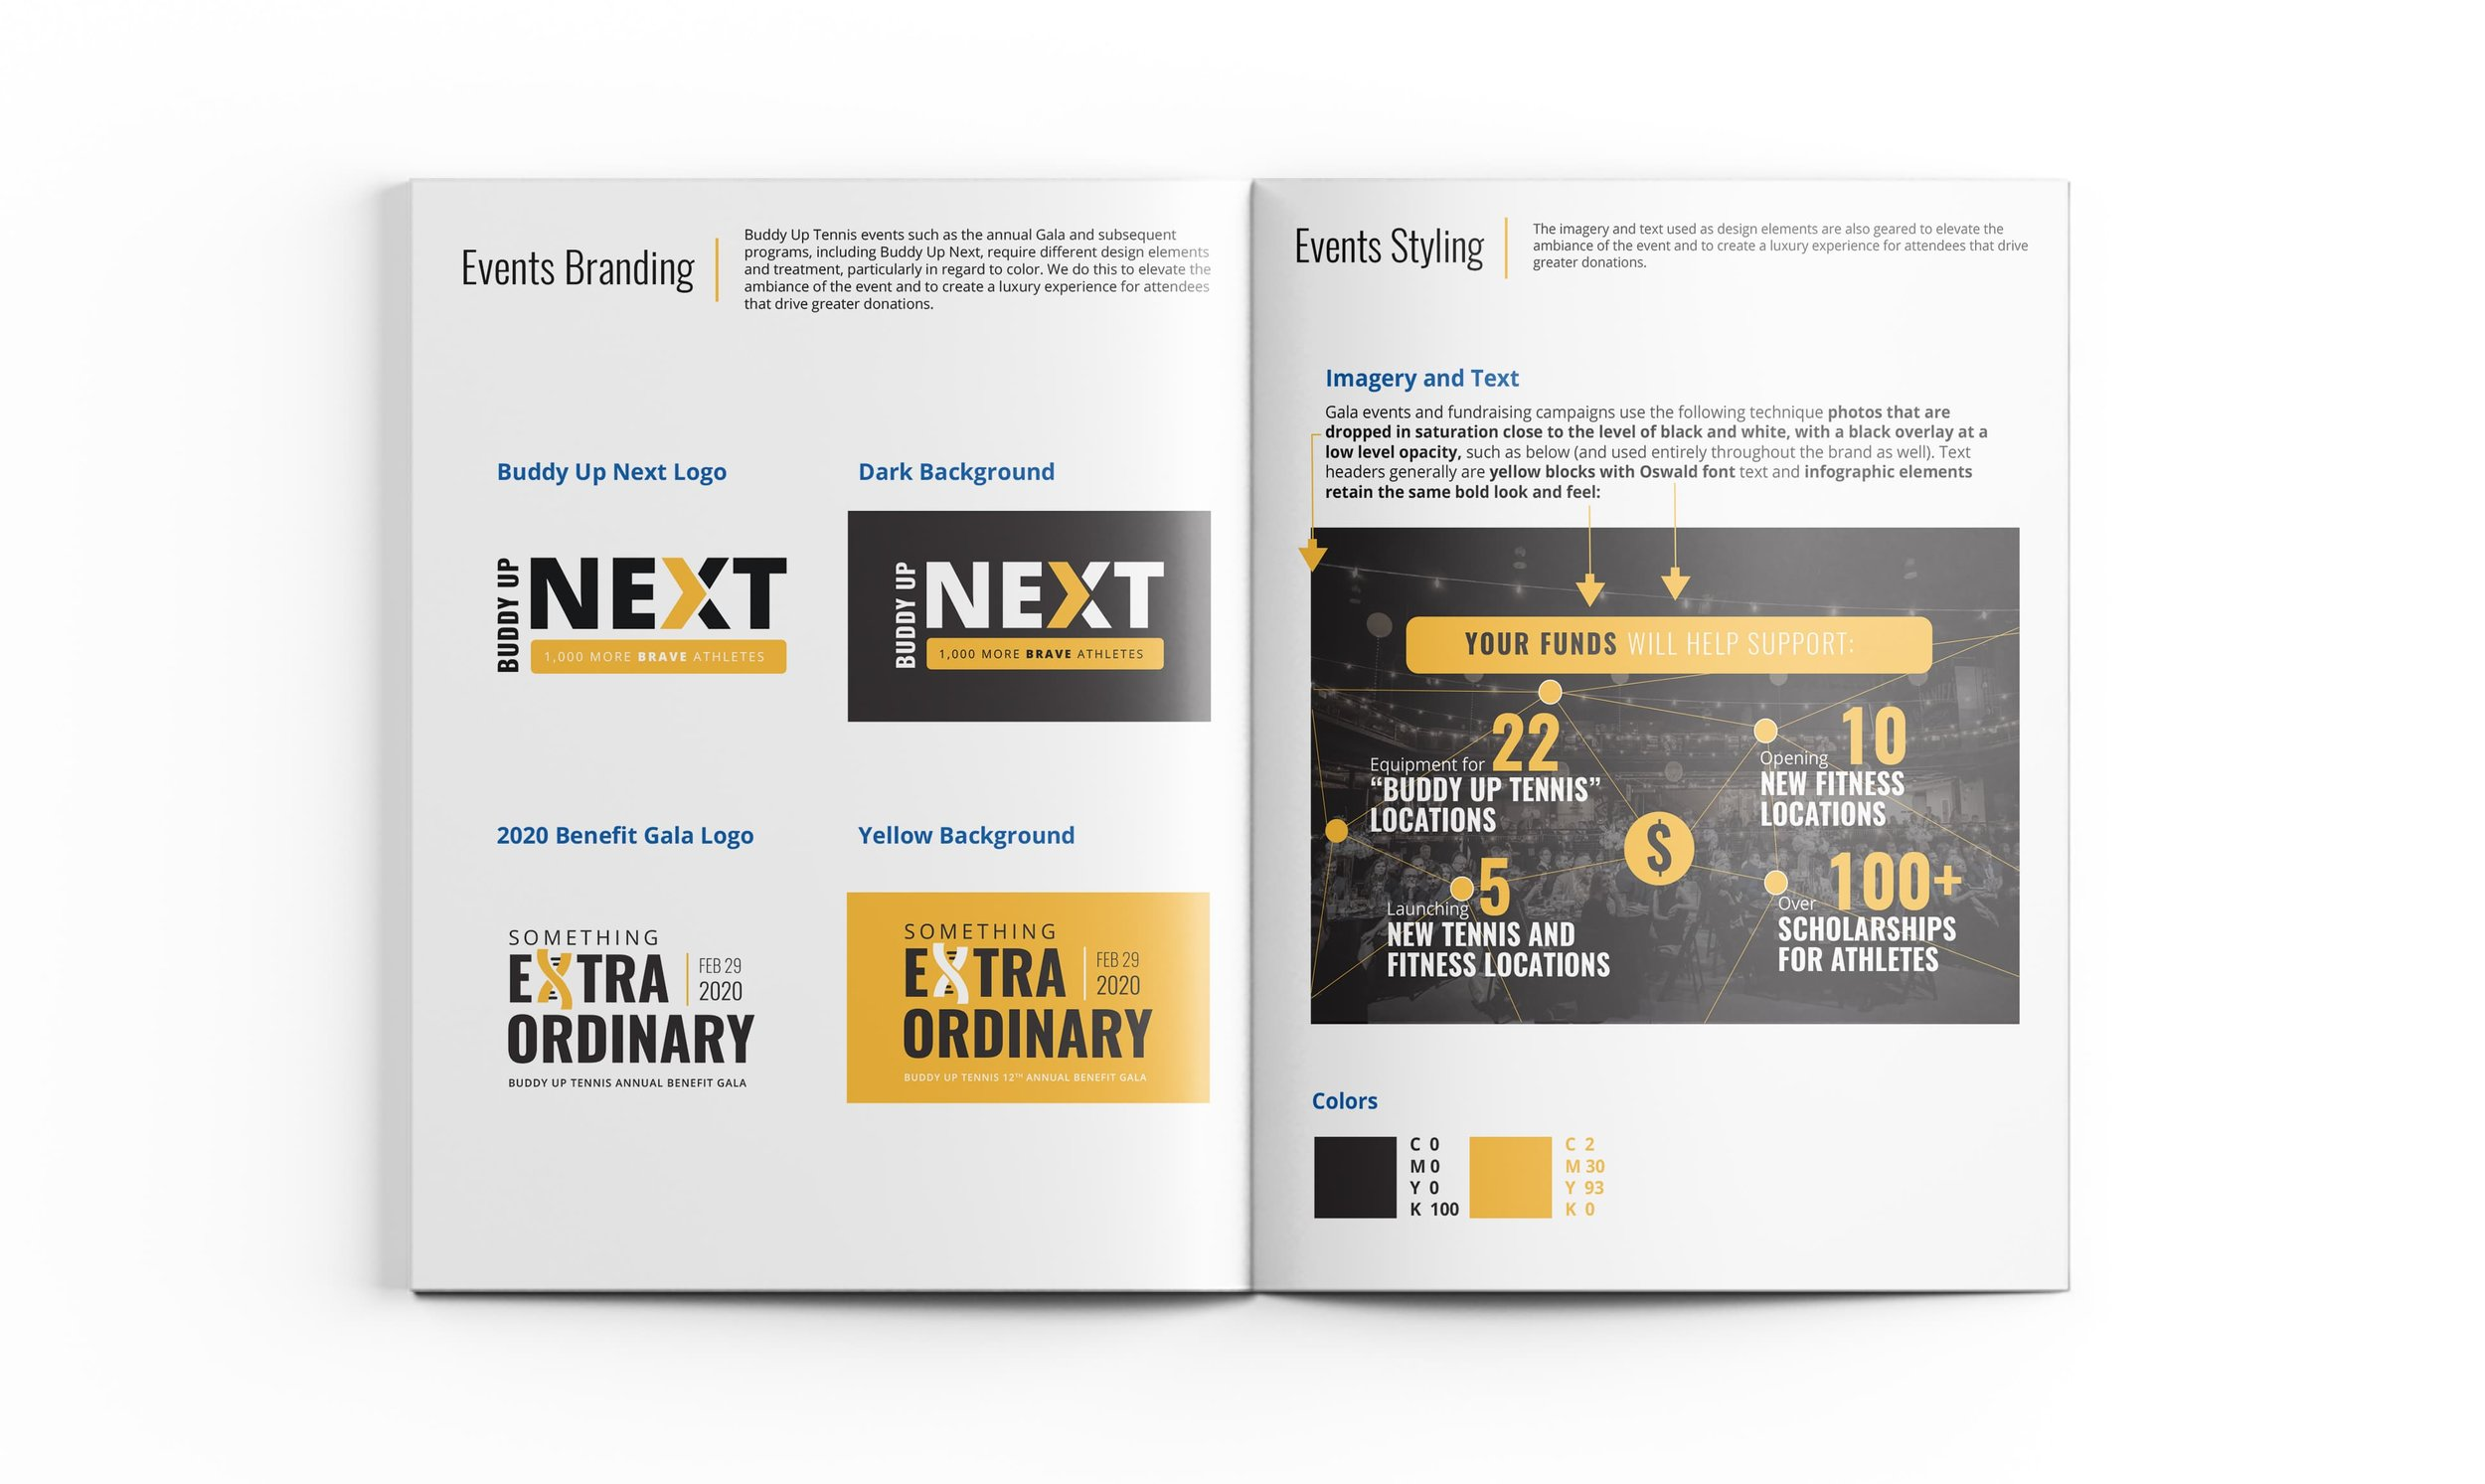 Buddy Up Tennis Brand Guide Mockup – Inside Event Styling Pages.jpg